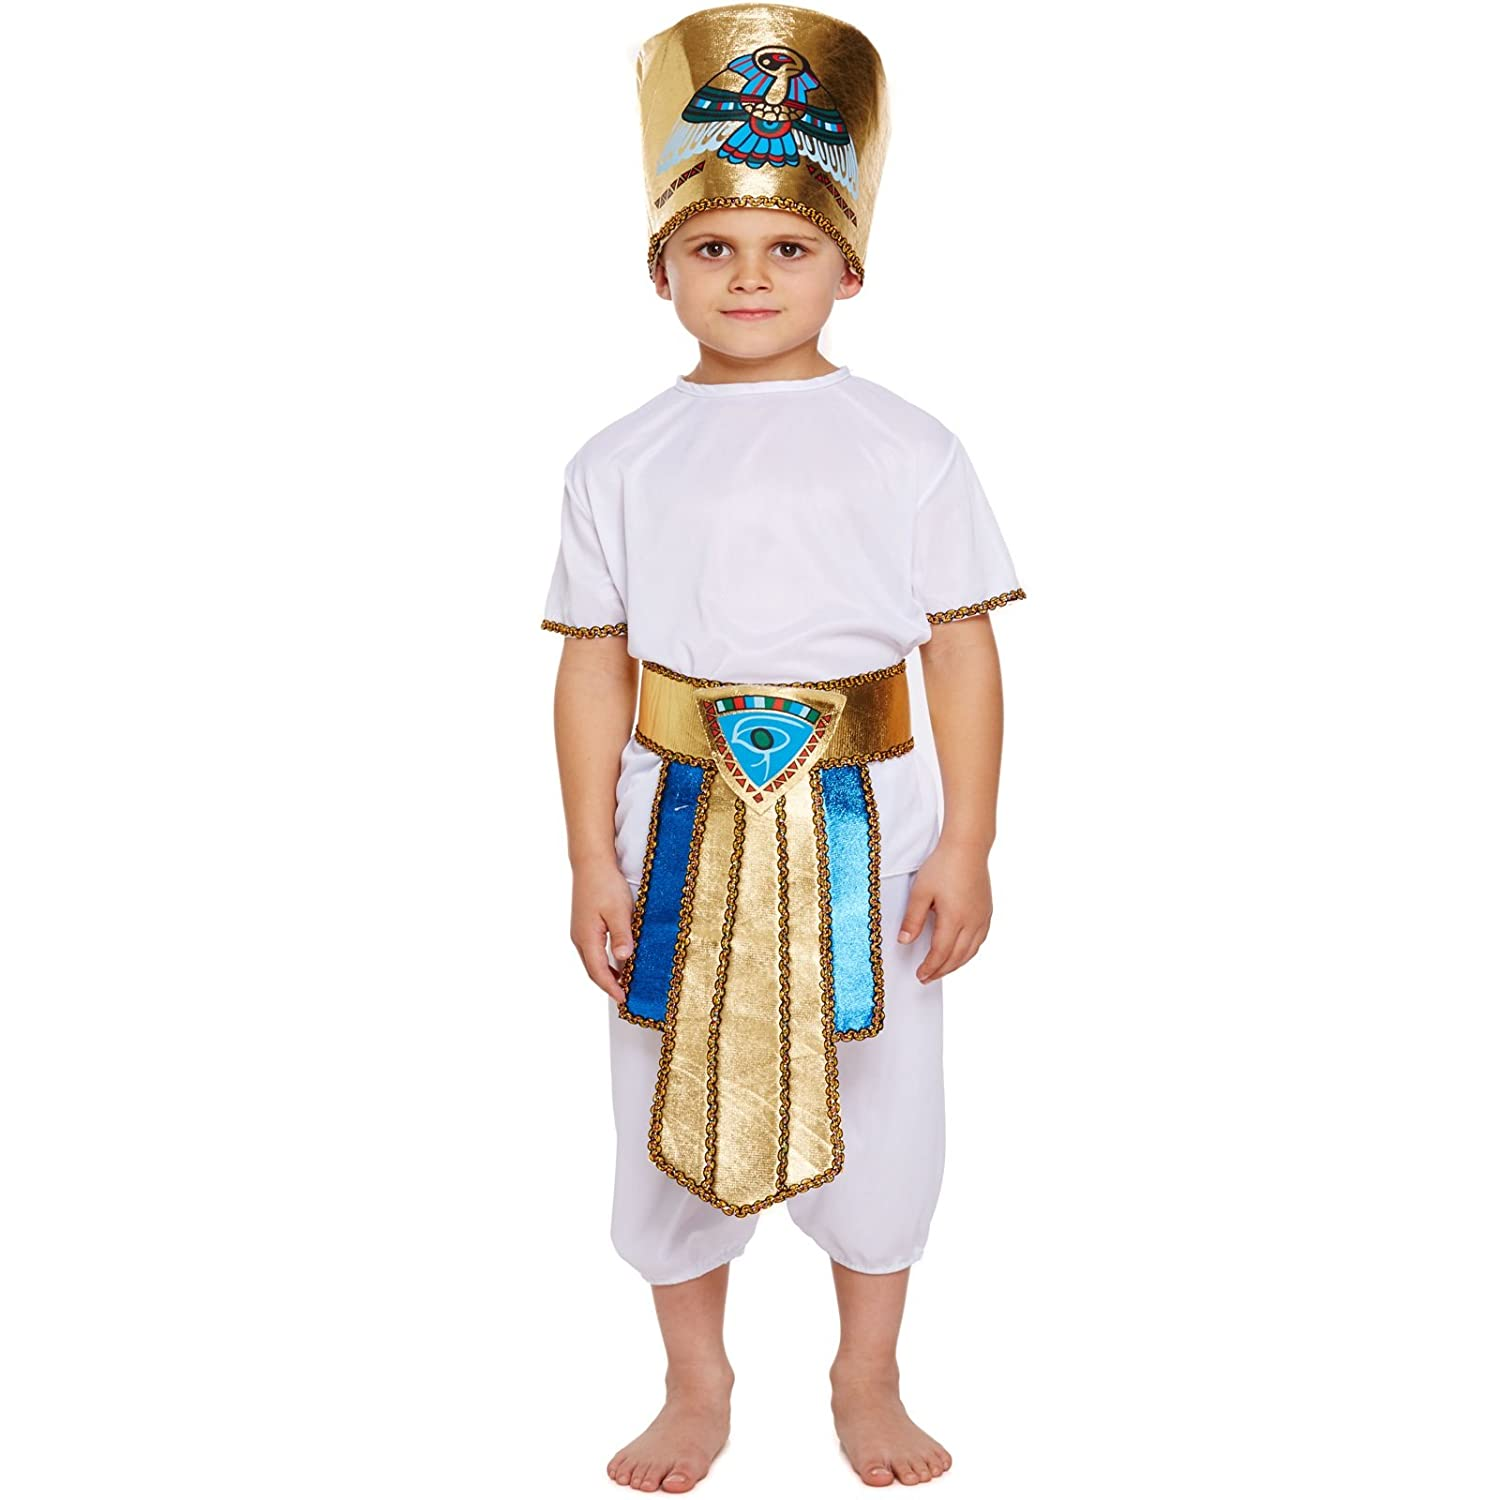 Ancient Egyptian King Tut Boy Outfit Child Costume